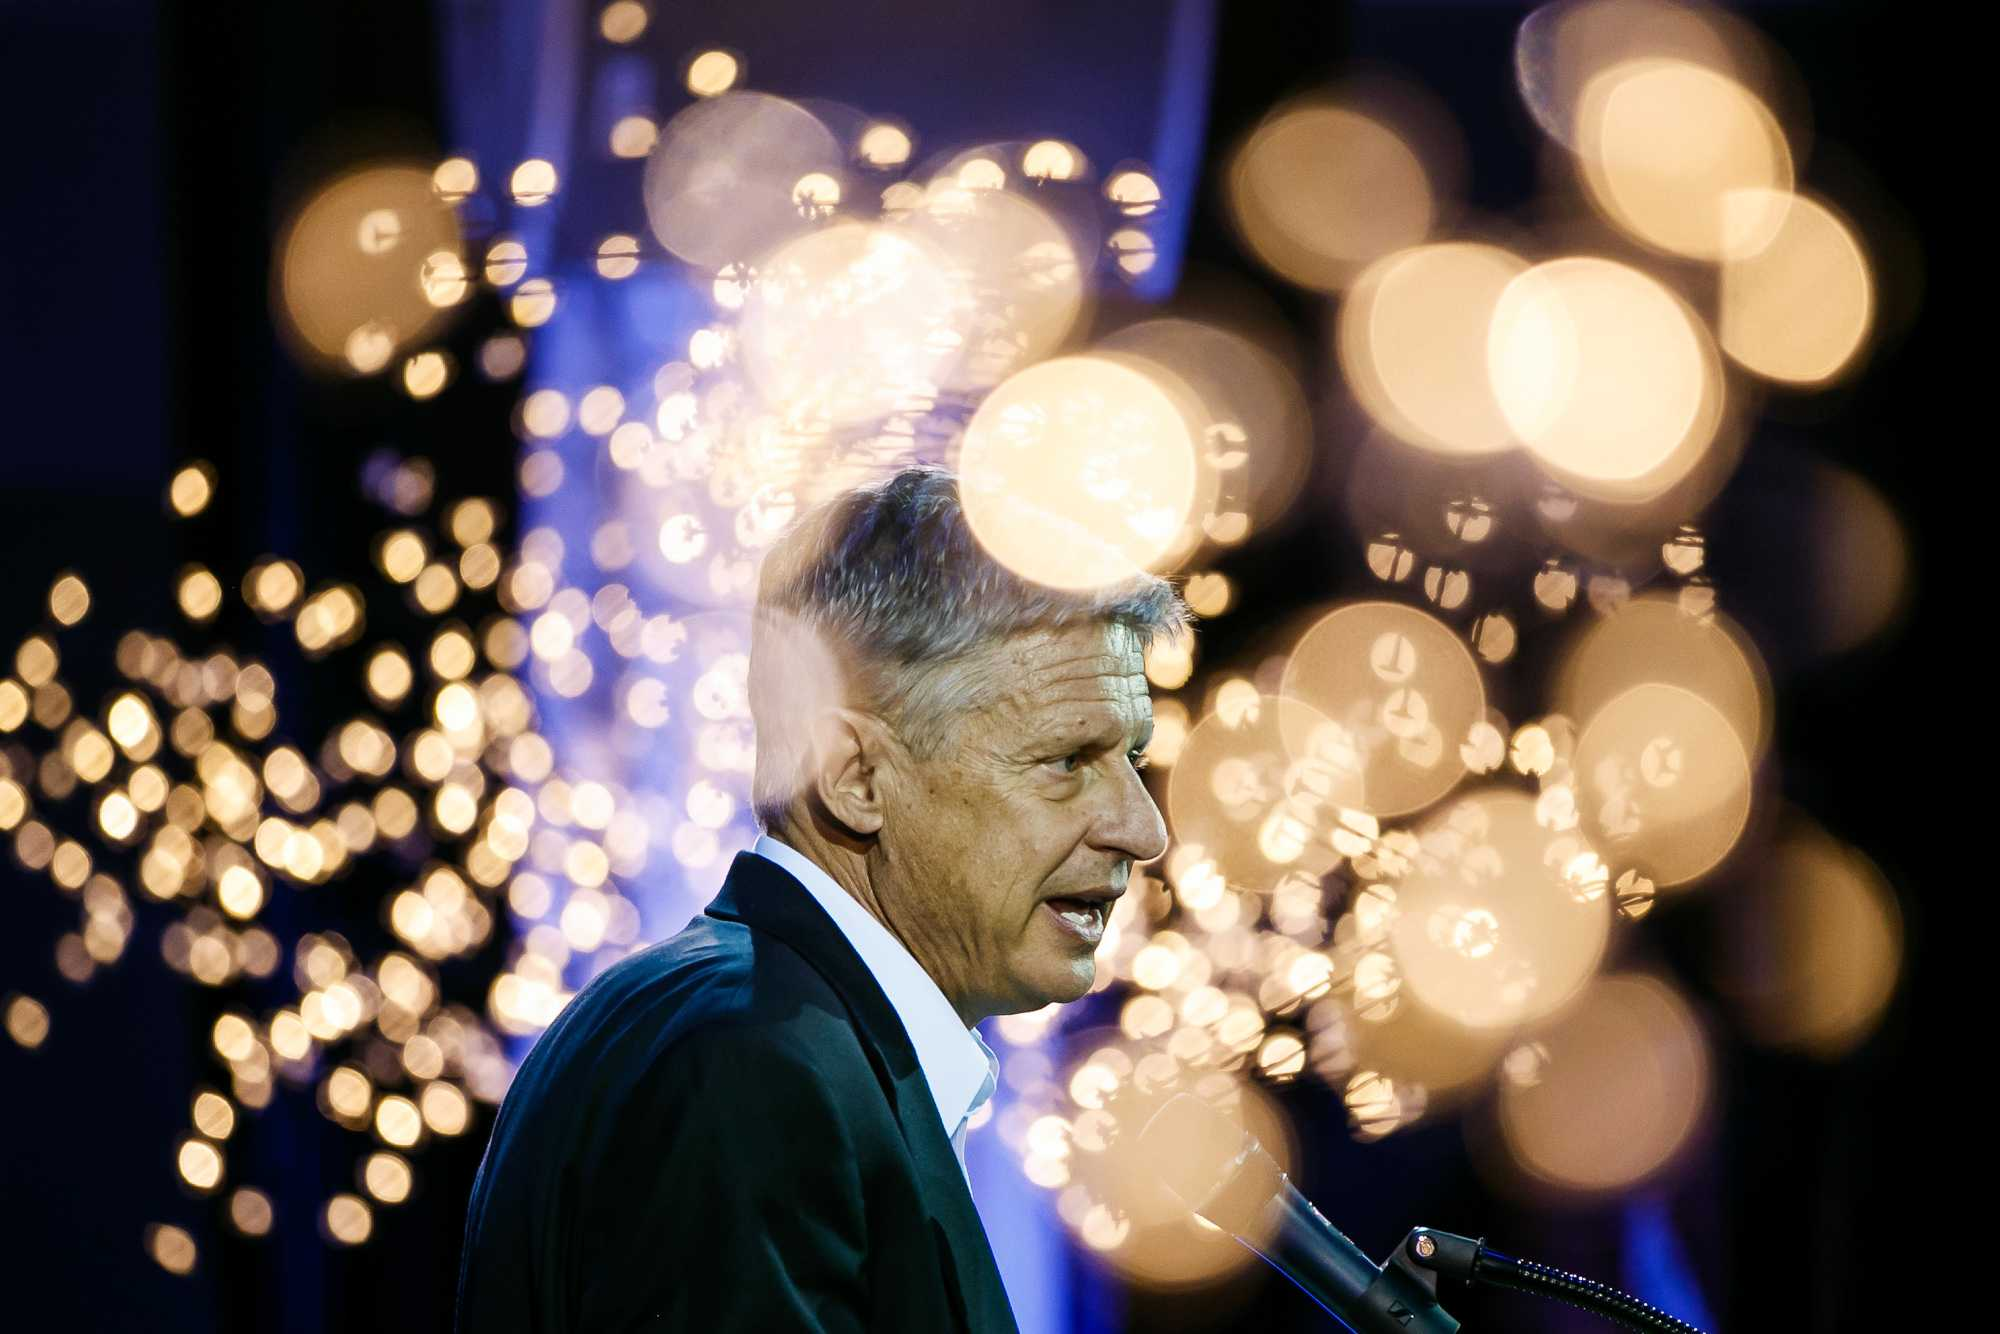 Gary Johnson, the Libertarian candidate for president, speaks at a campaign event in Los Angeles on Oct. 19. (Marcus Yam/Los Angeles Times/TNS)